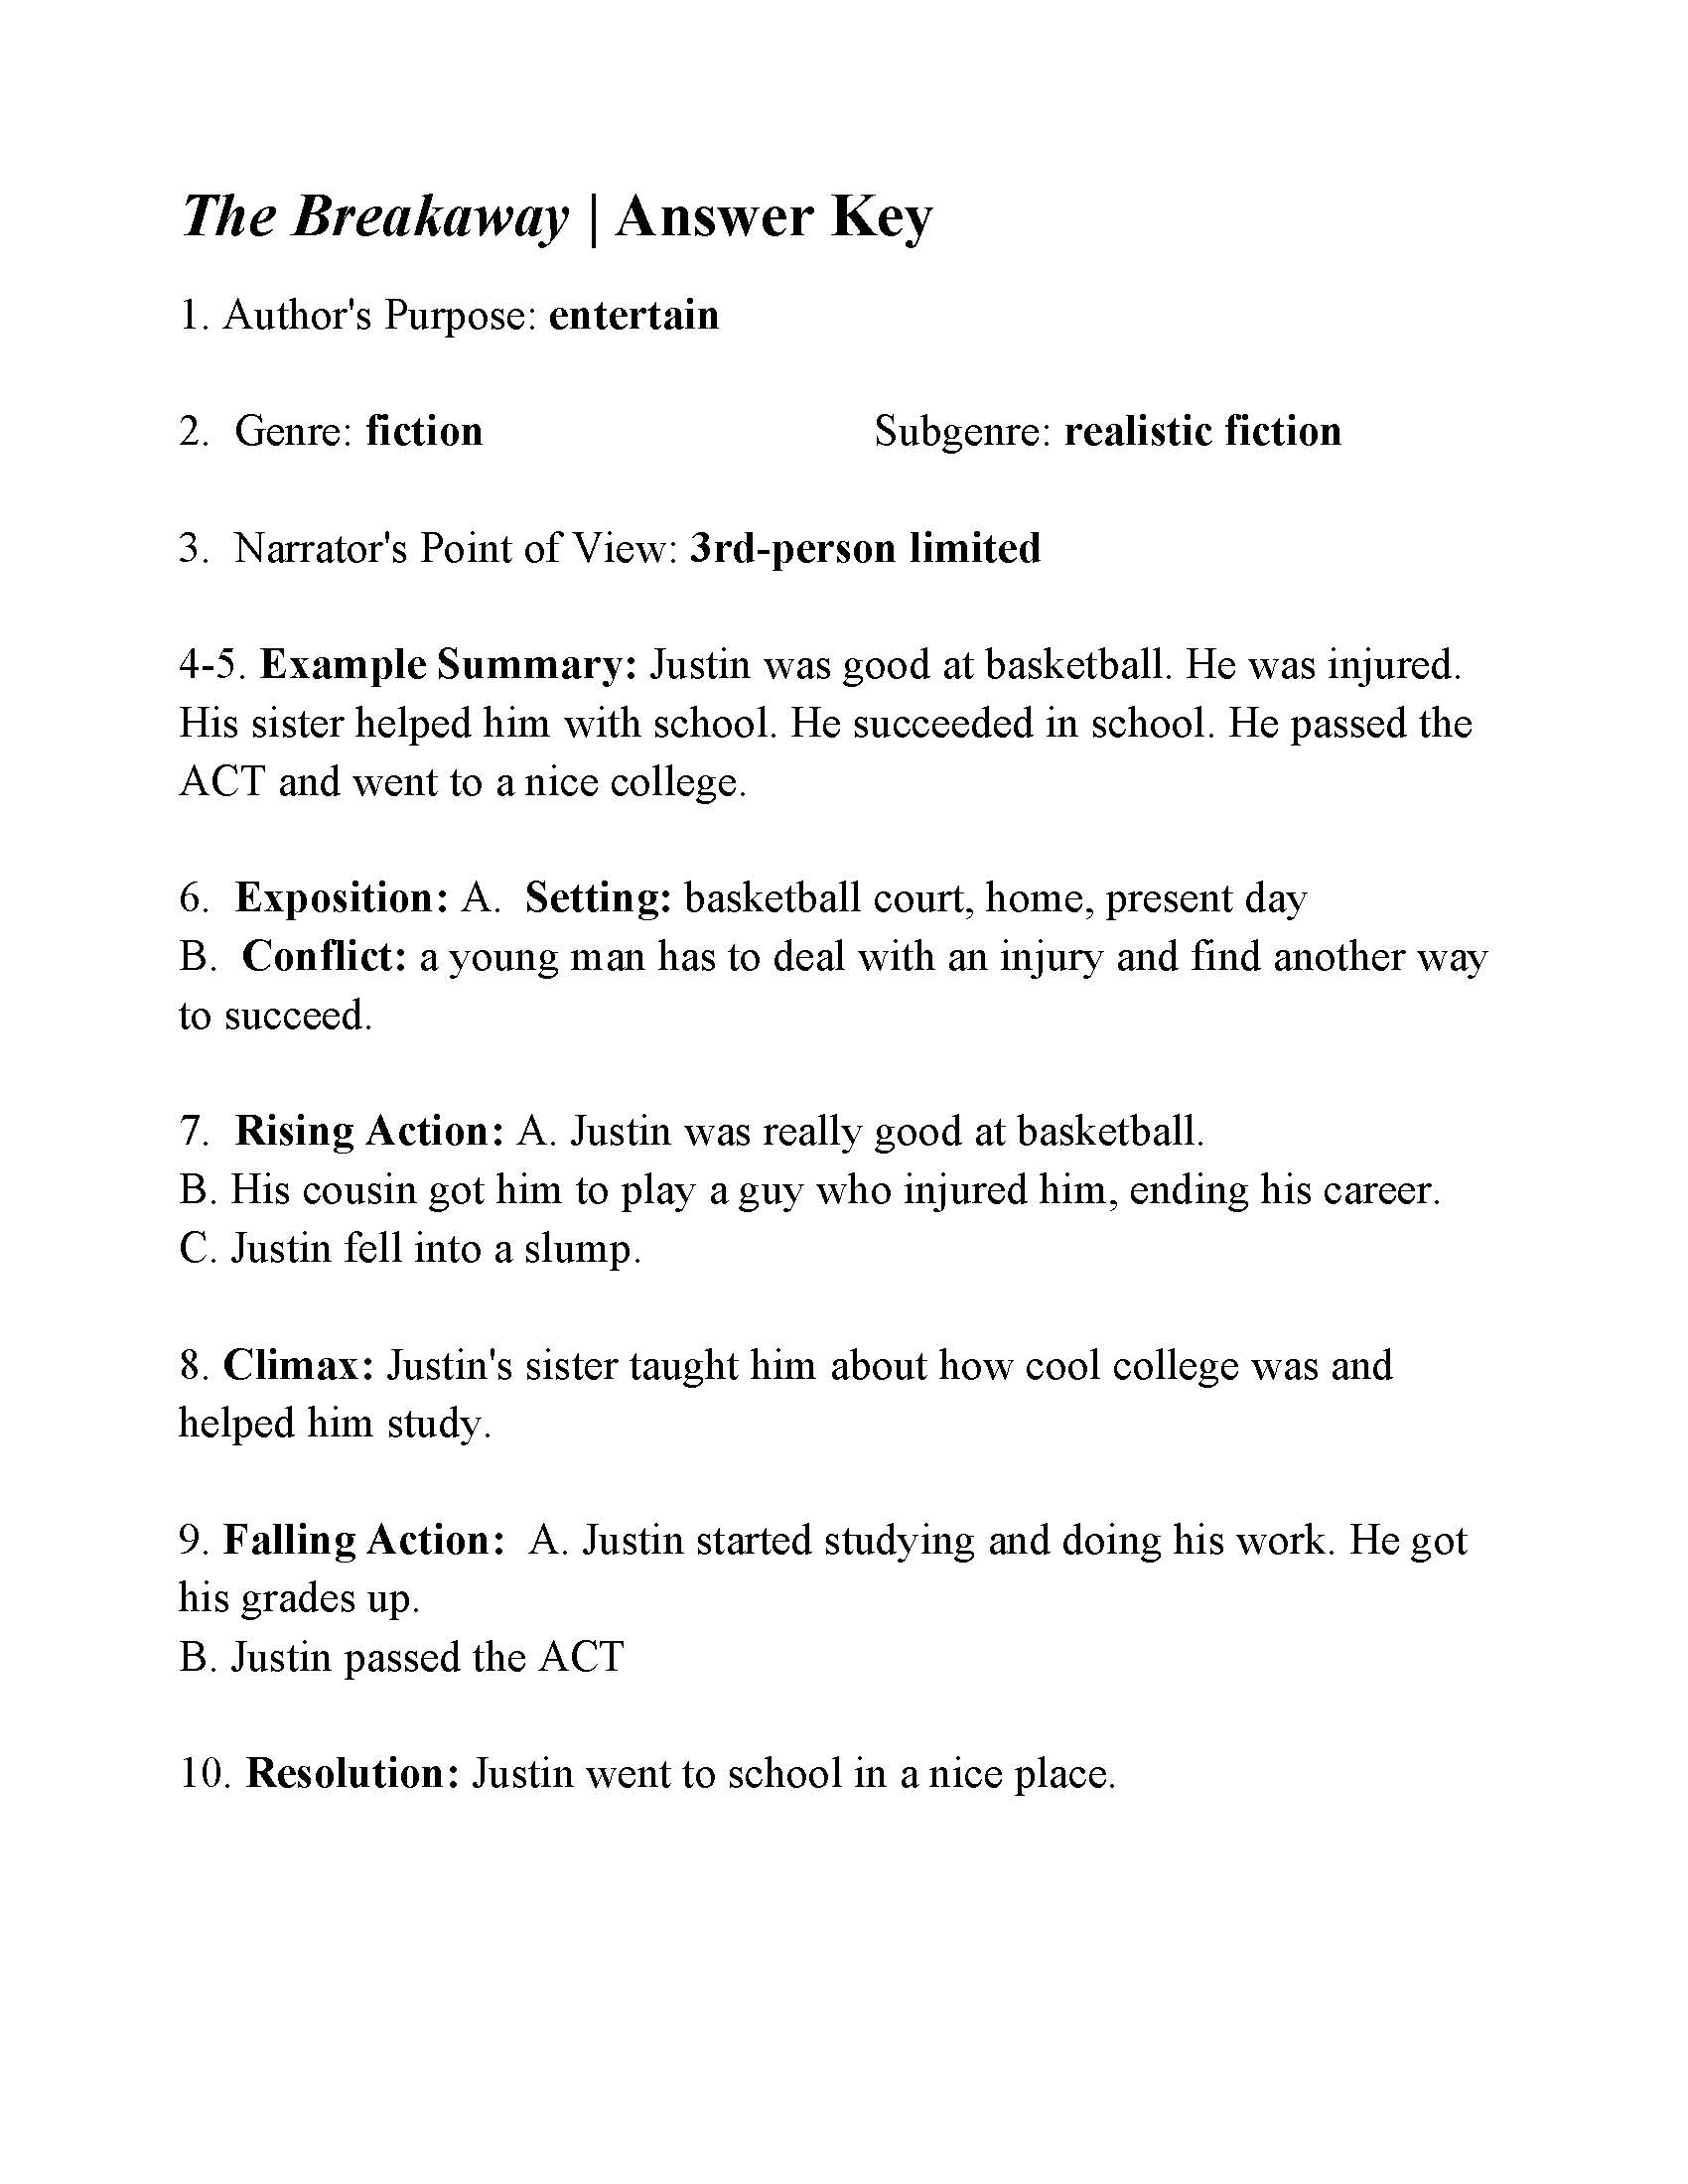 P E Basketball Test Answer Key